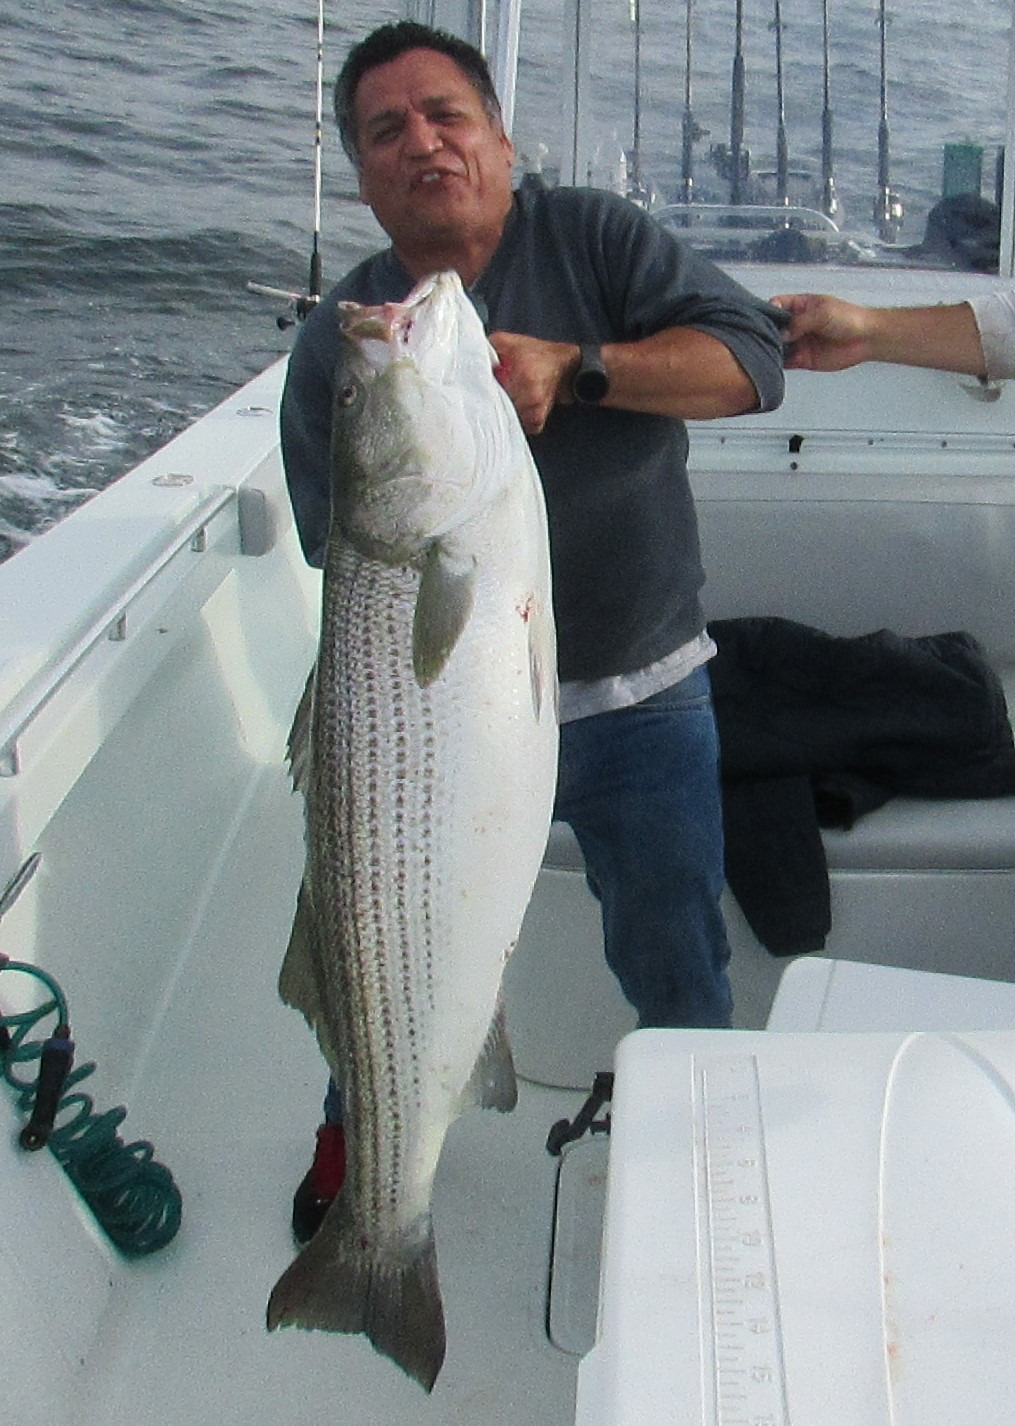 Juan Santacruz of Haverhill, MA with a 60 pound striped bass he caught on Capt. Sheriff Fishing Charters while fishing with parachute jigs on the Southwest Ledge side of Block Island this weekend.